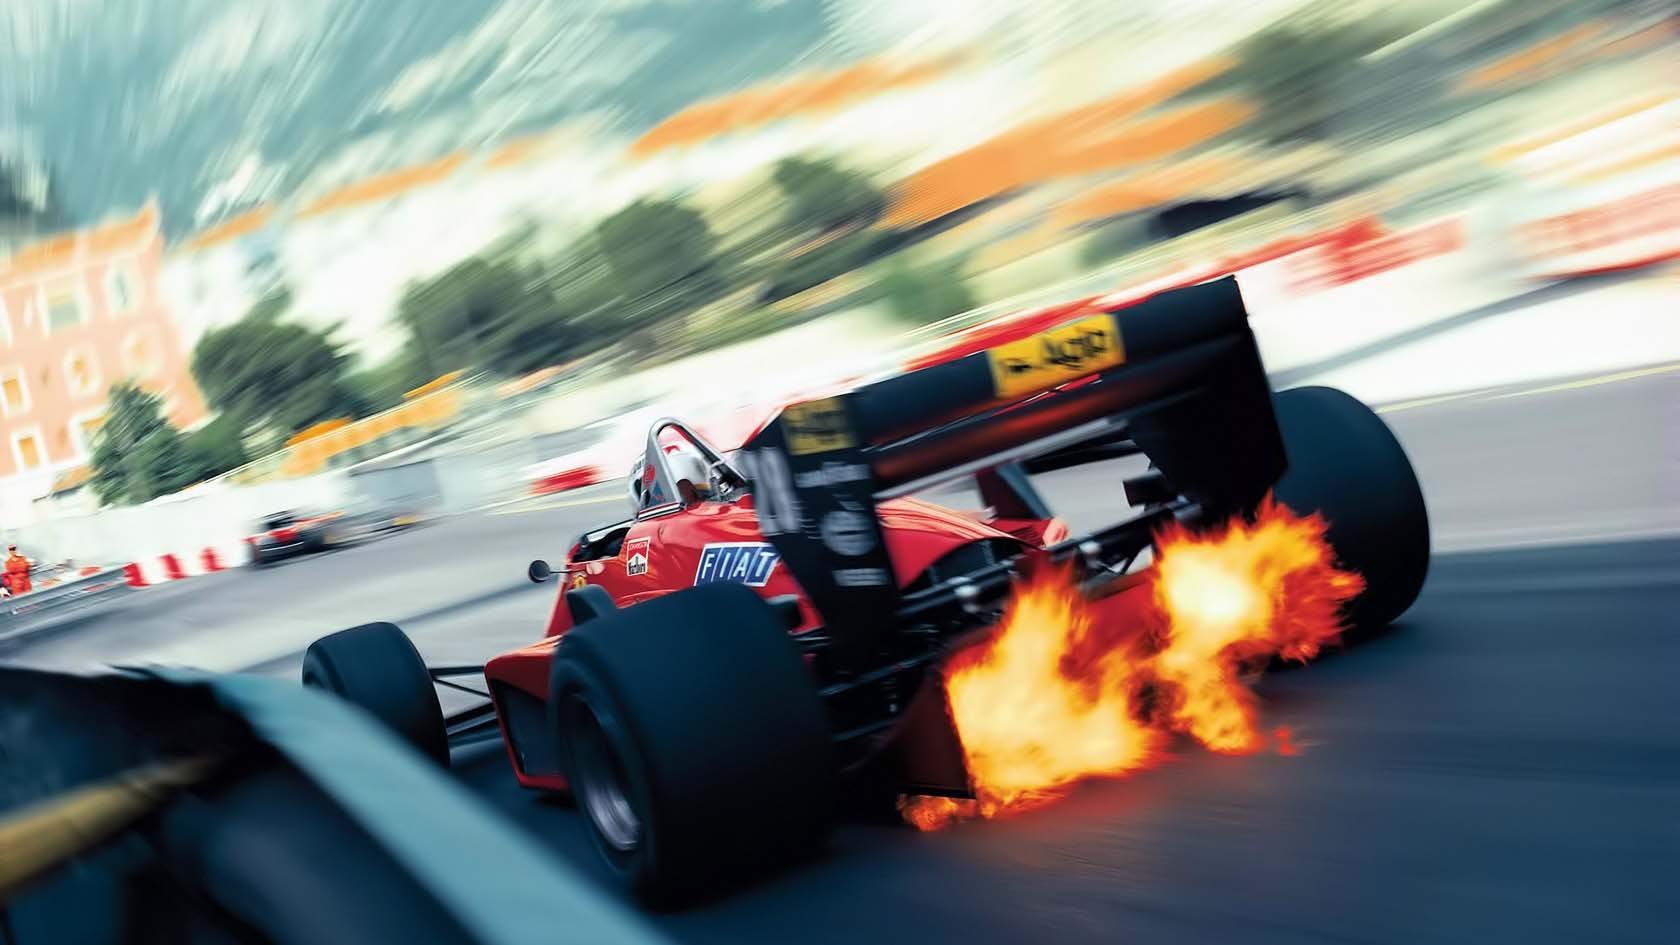 Business isn't rocket science; it's formula 1